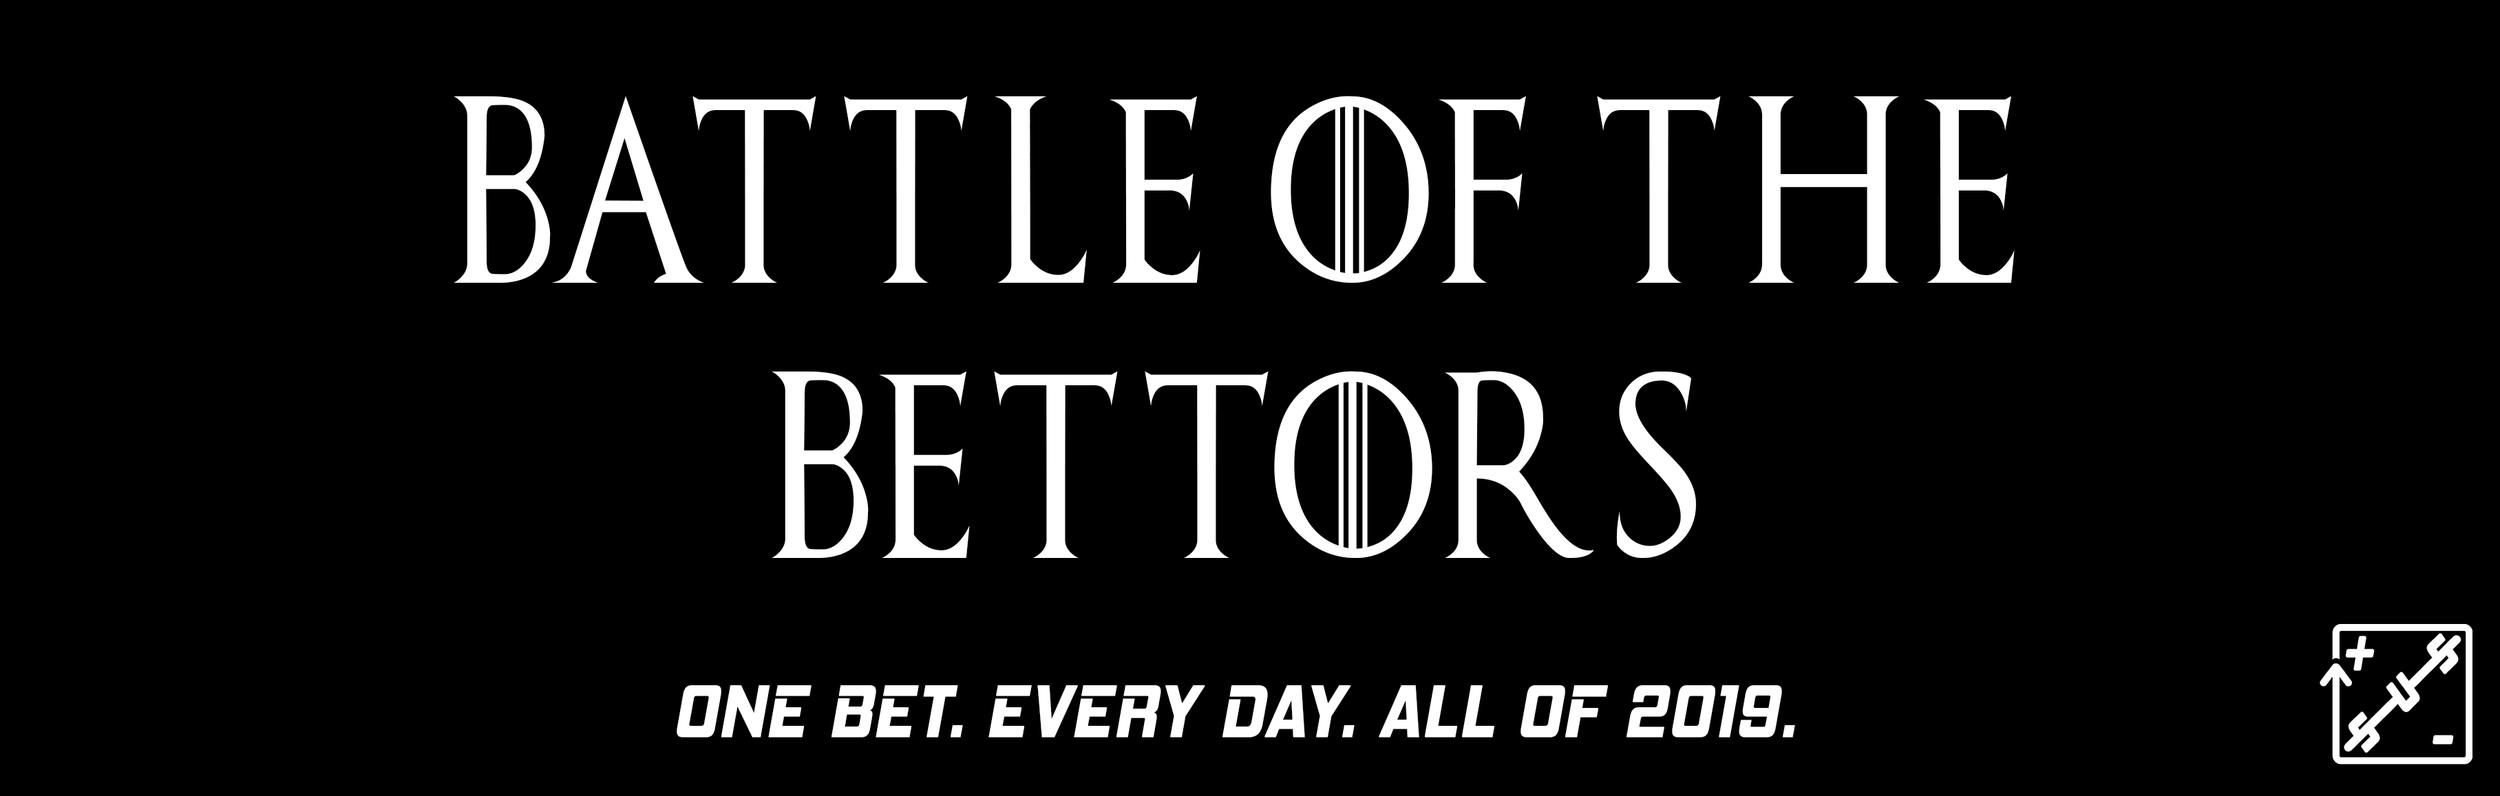 Battle of the Bettors Resized.png